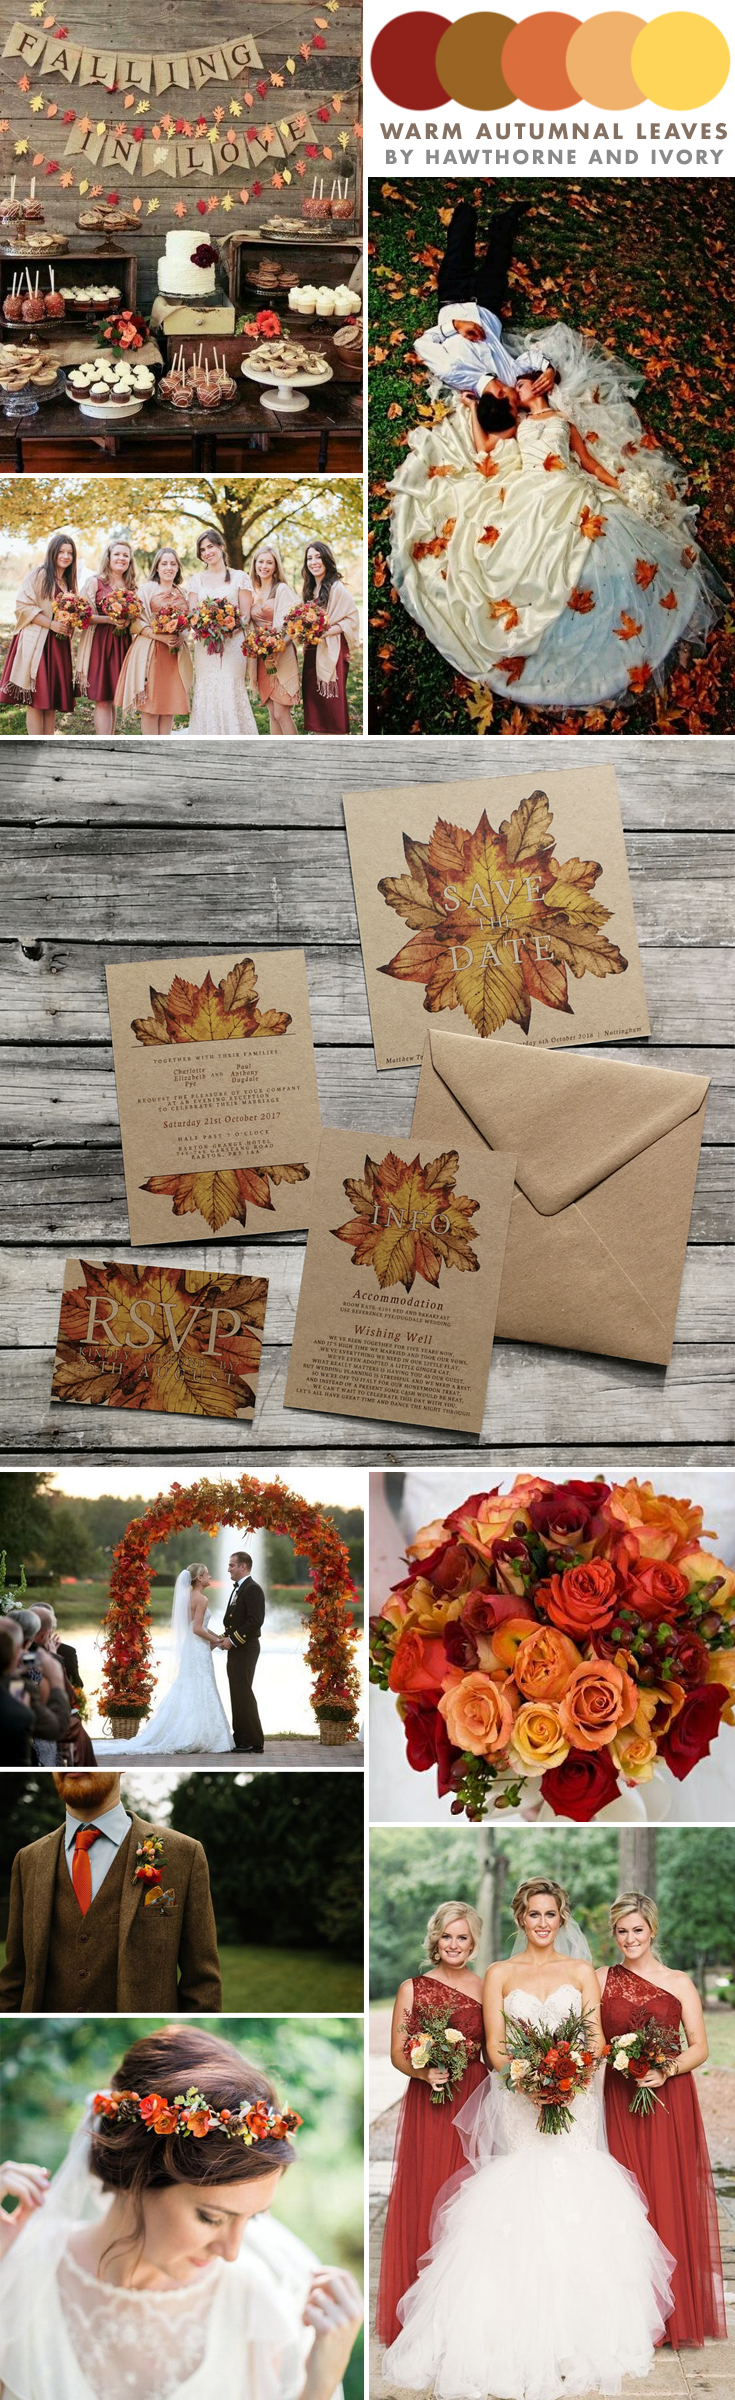 autumn leaves wedding moodboard hawthorne and ivory